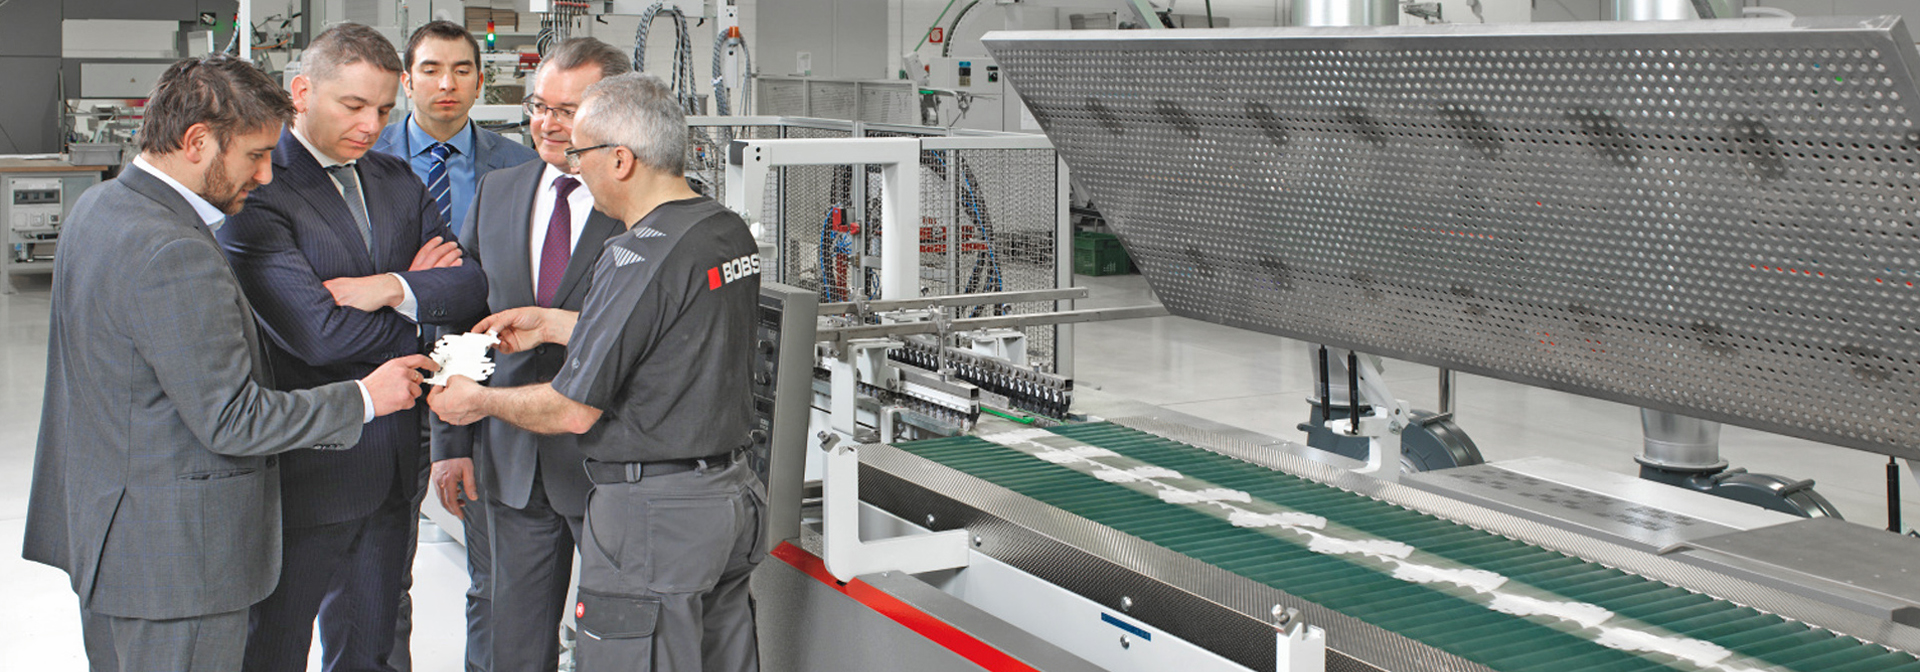 BOBST Leading Supplier Of Equipment And Services To Packaging